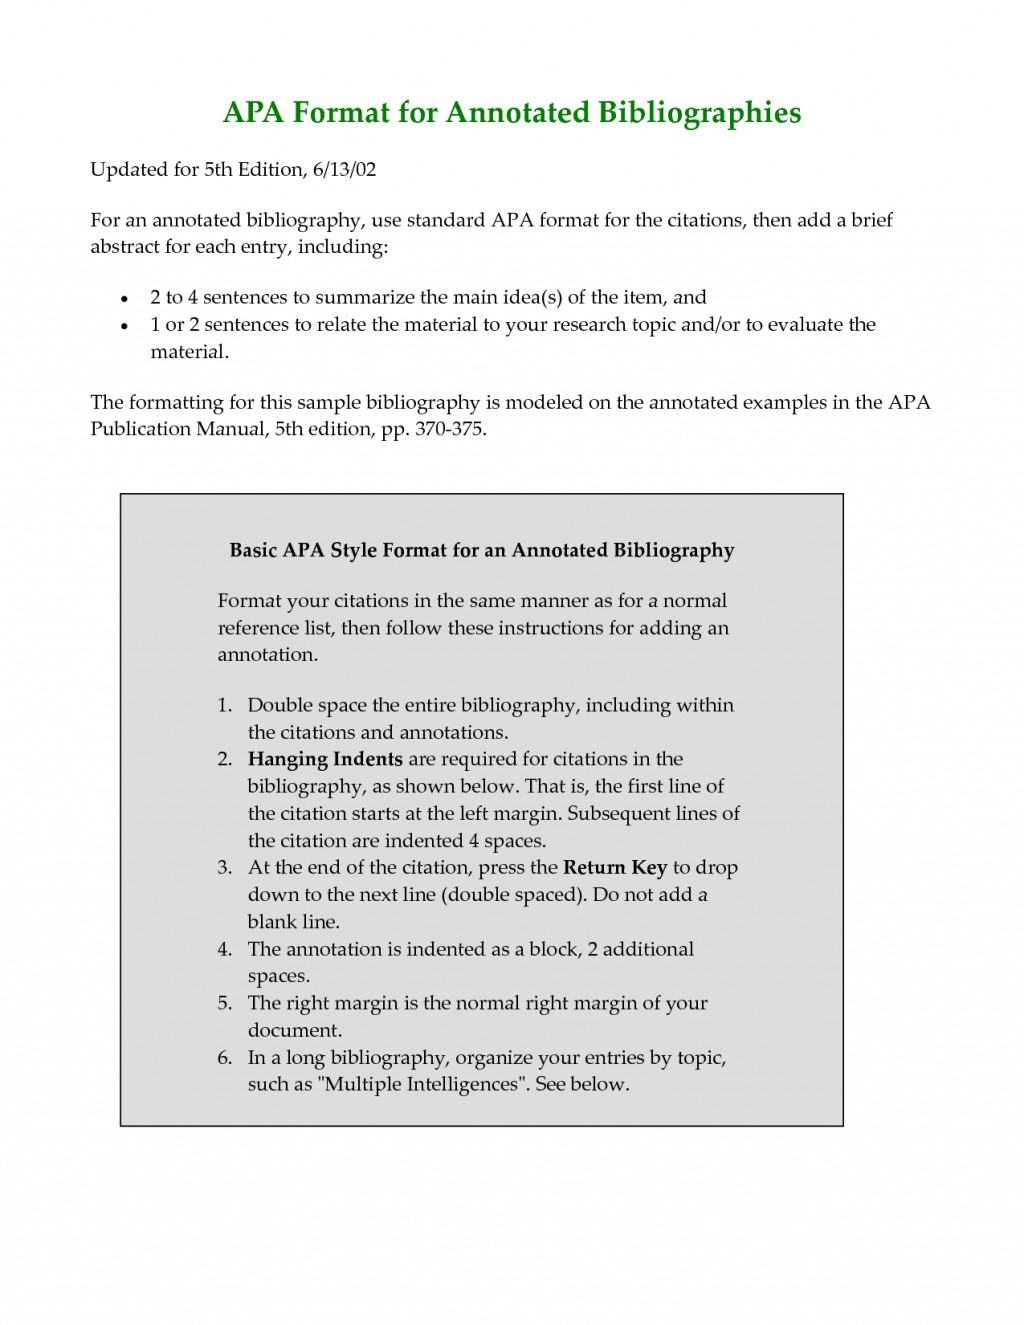 004 How To Make Citations In Research Paper Apa Unusual A Large